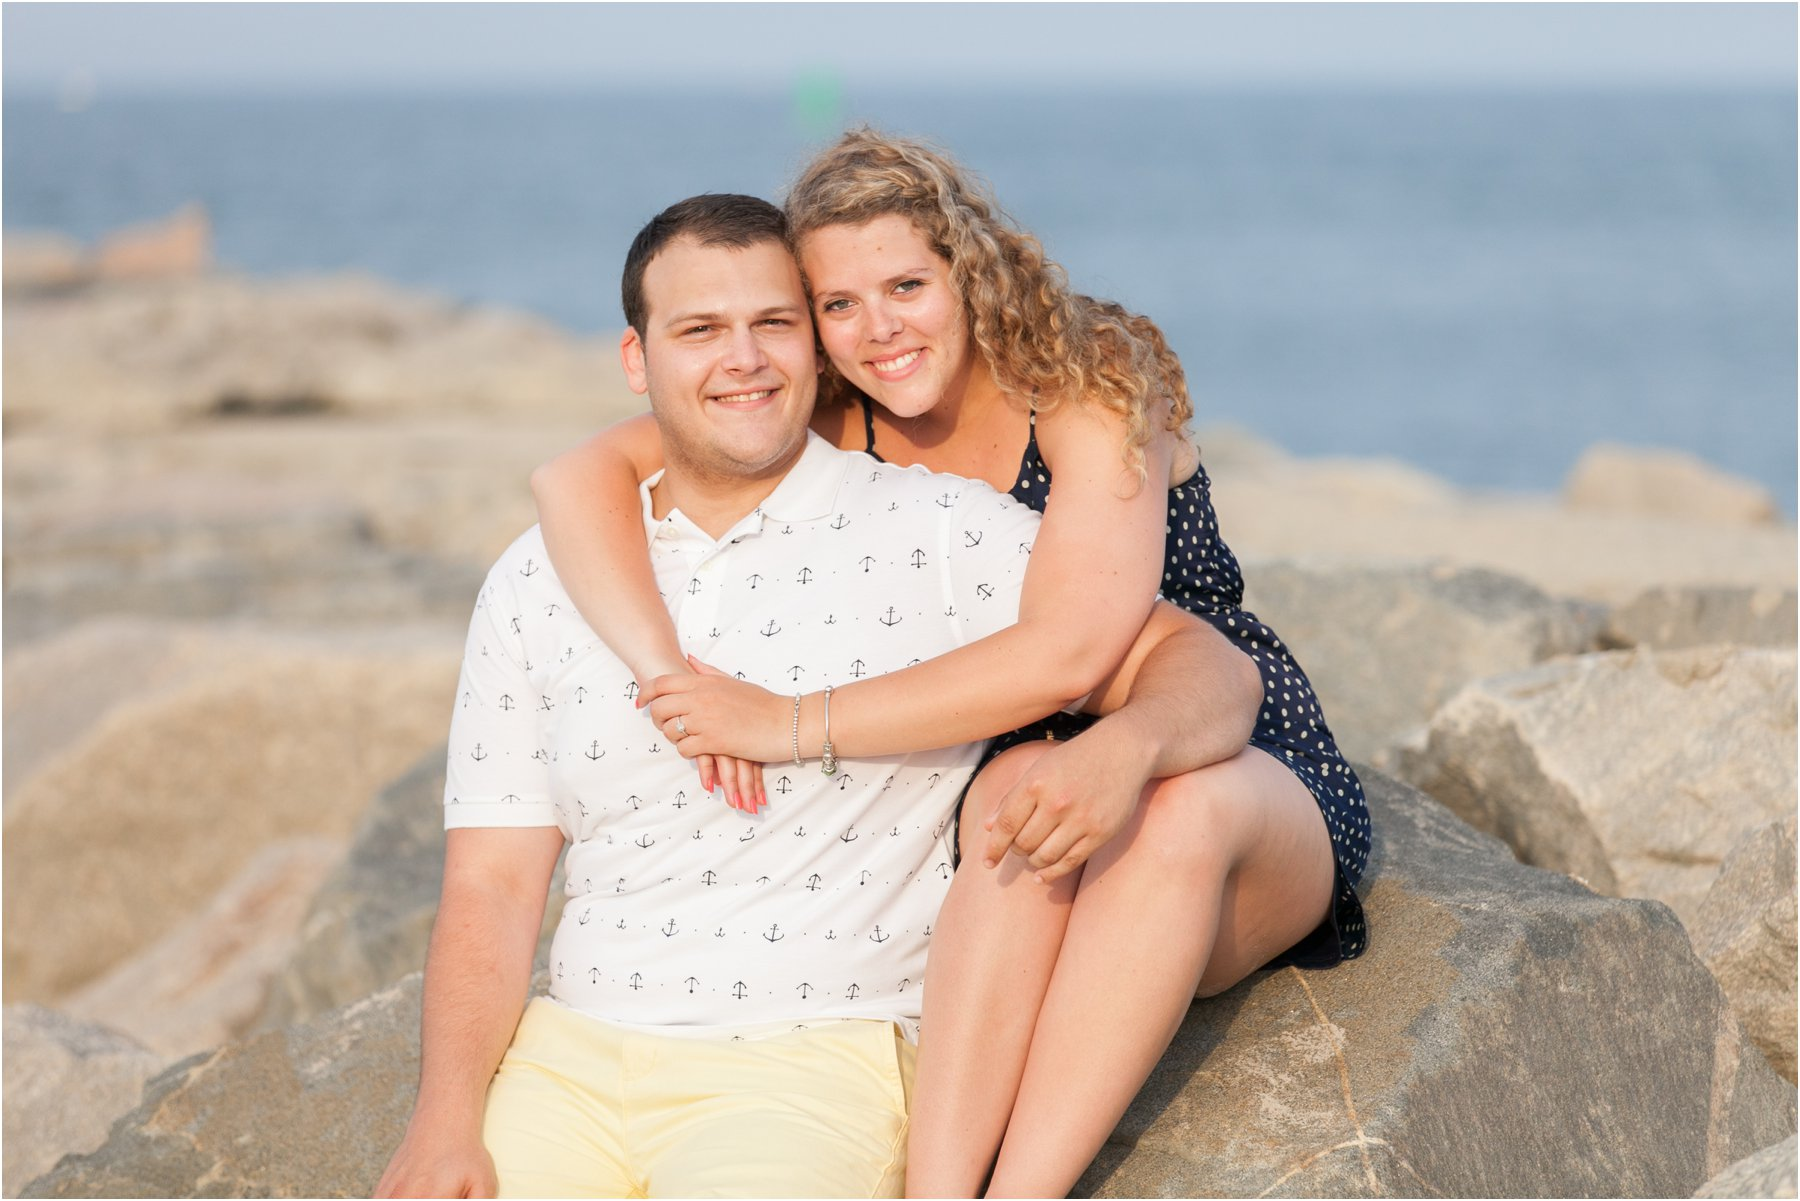 engagement_beach_Photography_Jessica_Ryan_Photography_virginia_virginia_beach_0303